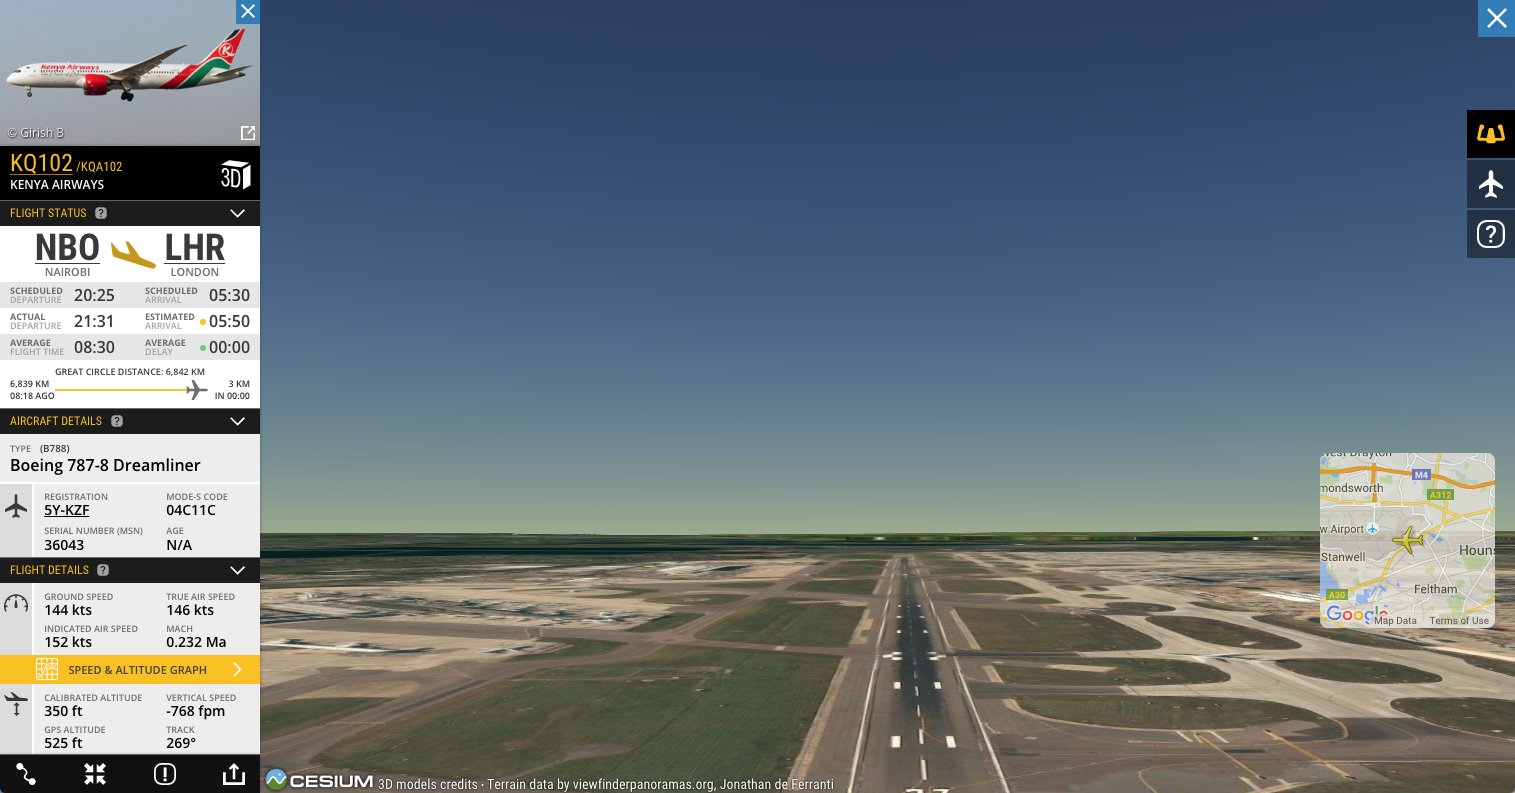 See what the pilots see in our new 3D View!